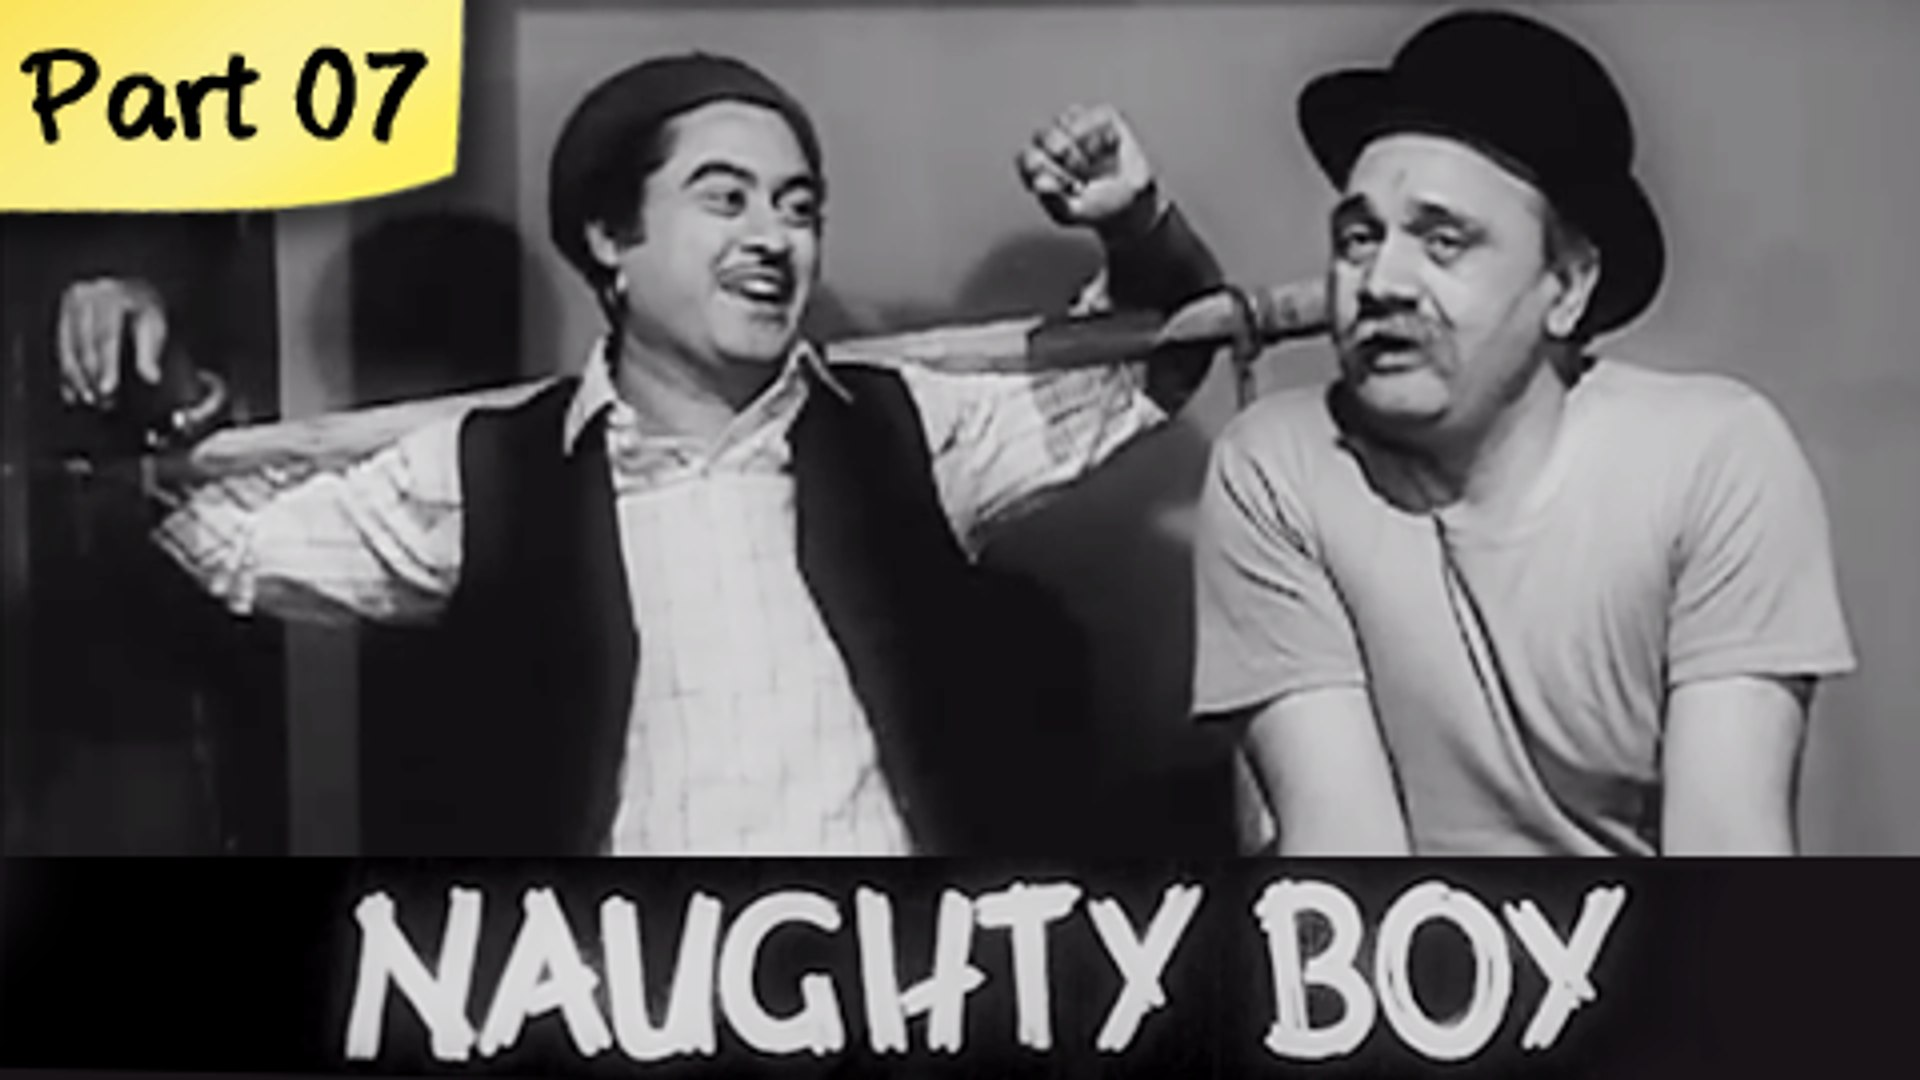 Naughty Boy - Part 07/09 - Classic Funny Hit Hindi Drama Movie - Kishore Kumar, Kalpana